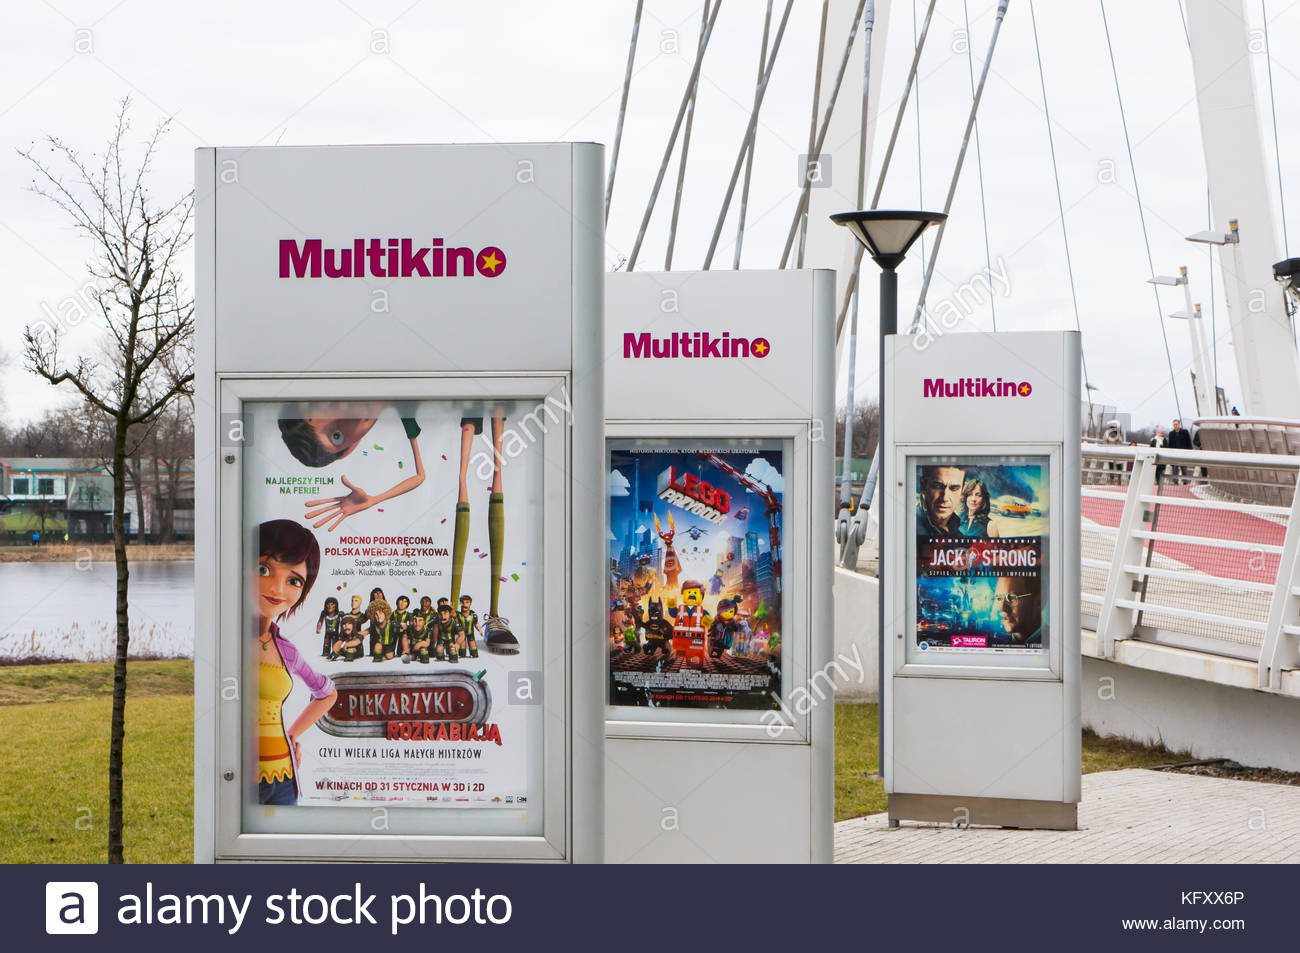 POZNAN, POLAND - FEBRUARY 16, 2013: Row of Multikino movie advertisements by the Malta shopping mall - Stock Image